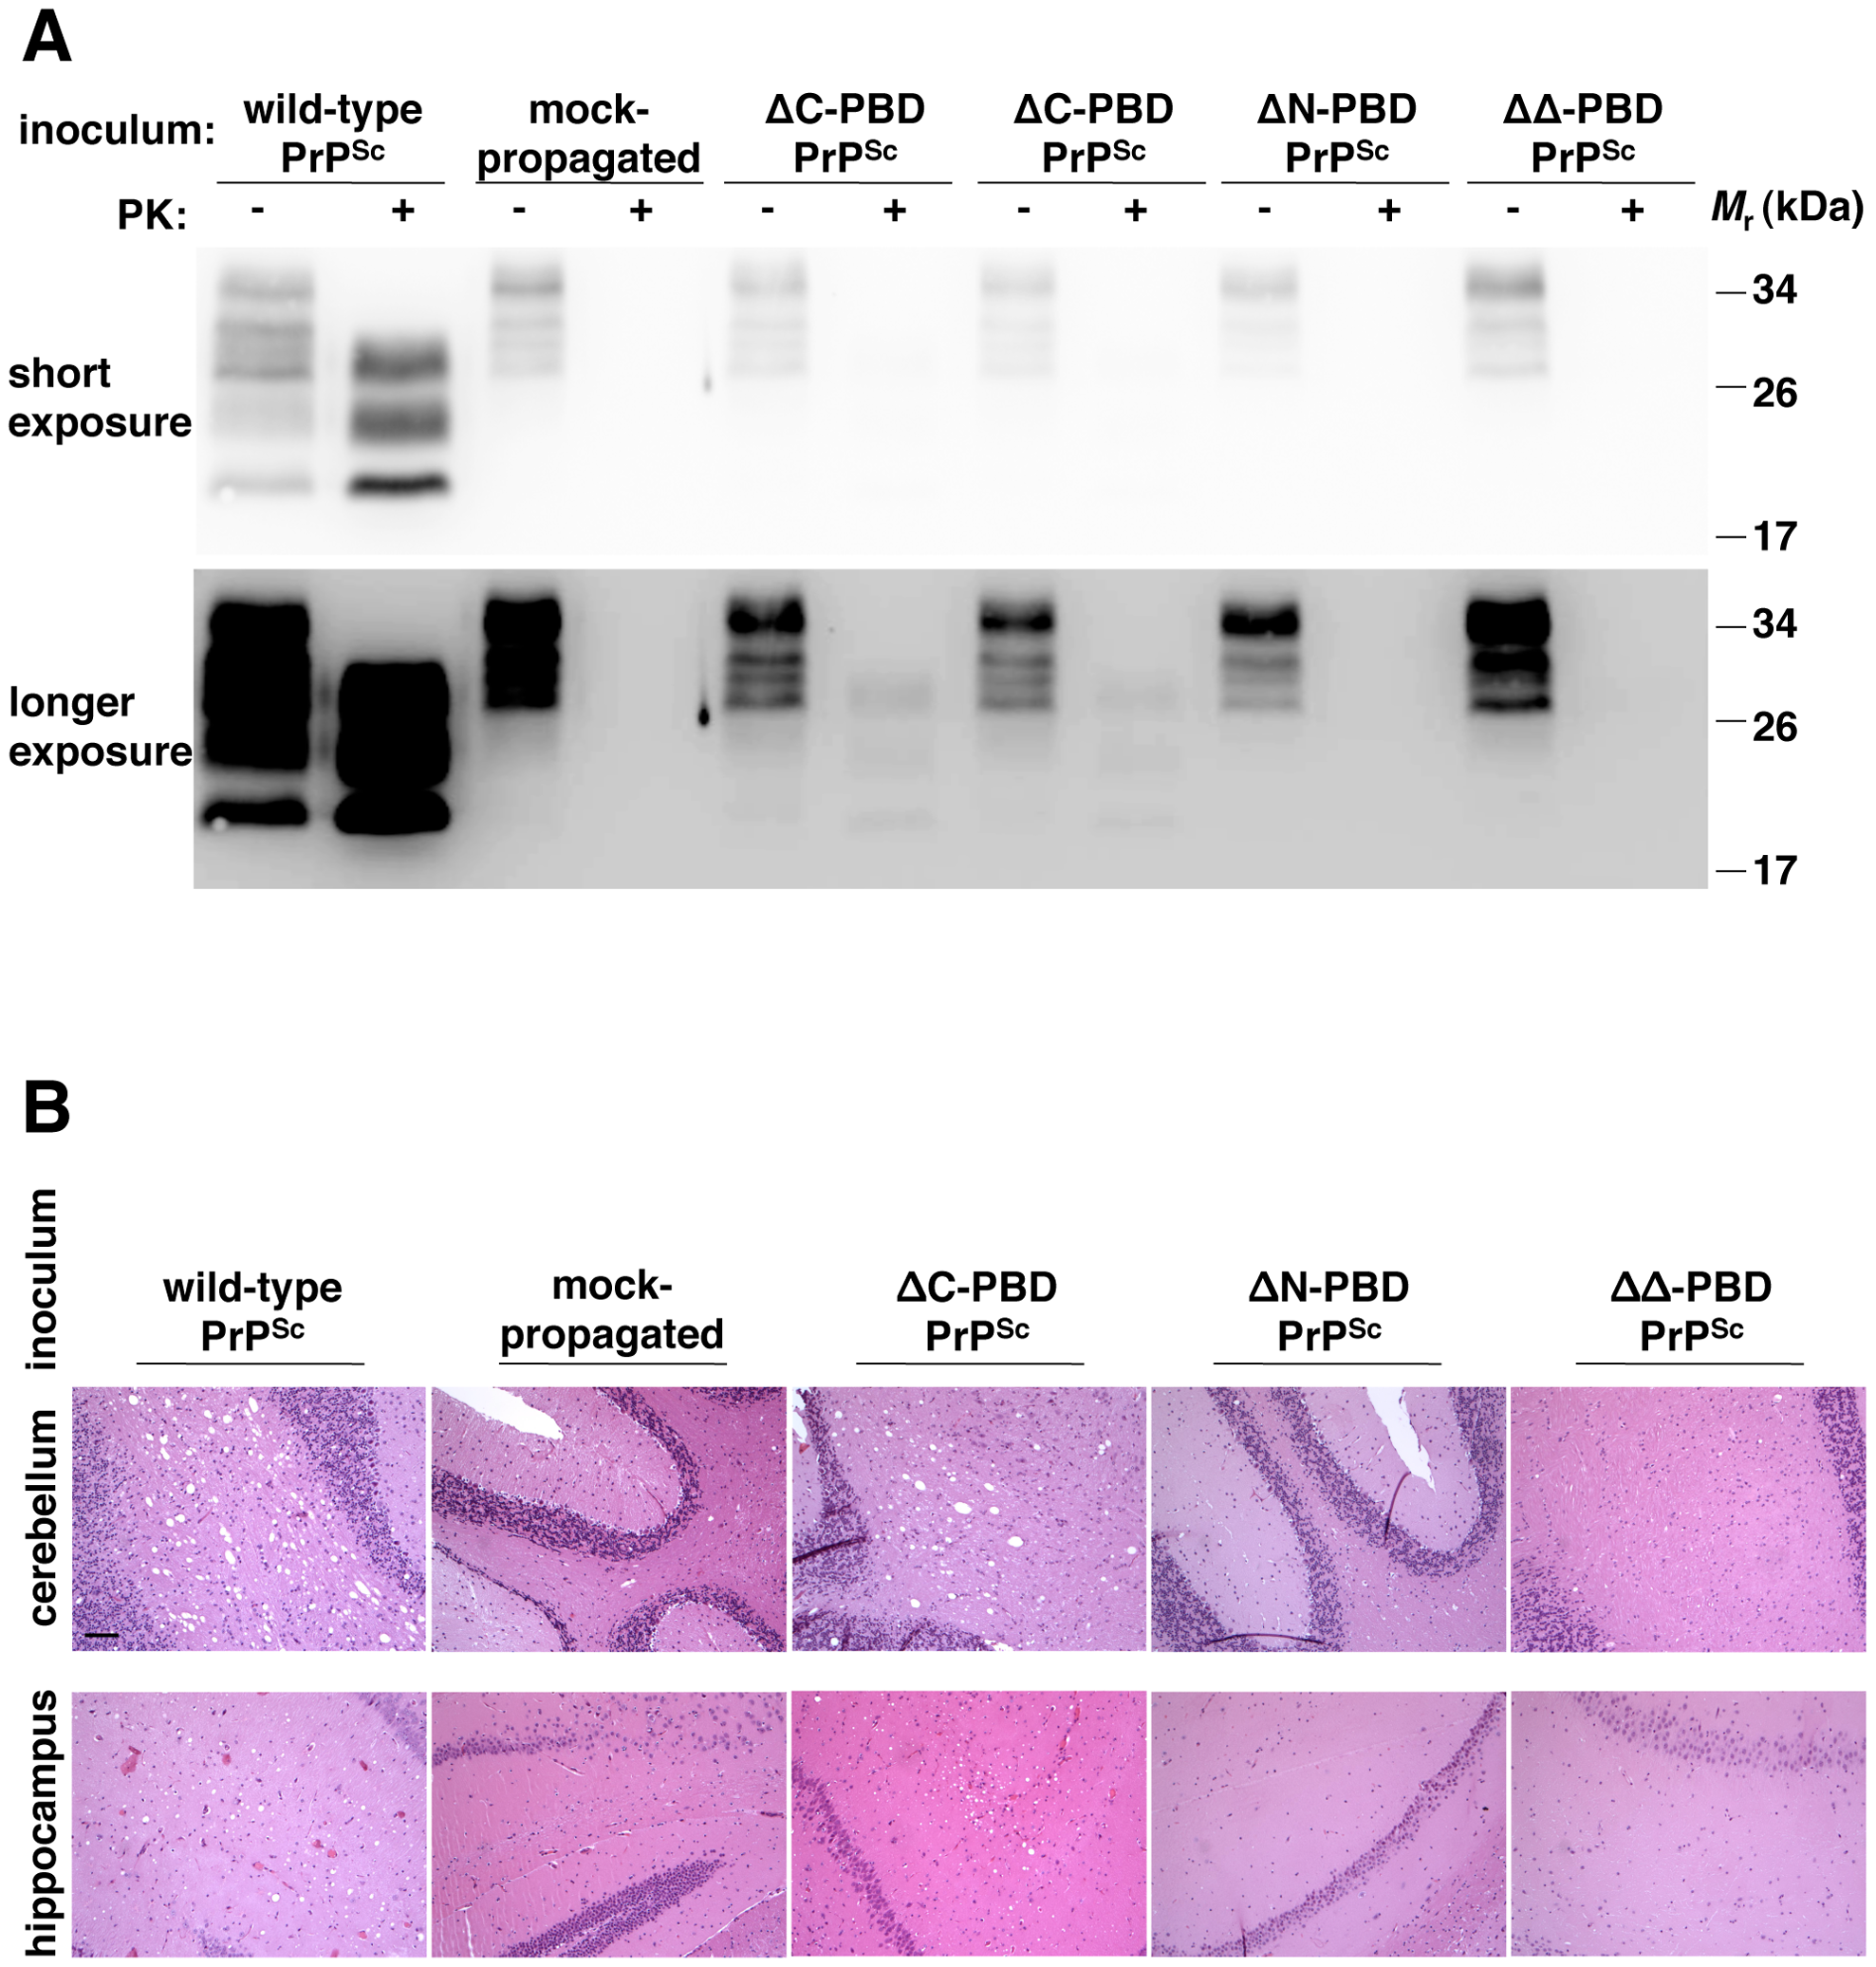 Biochemical and neuropathological analysis of mice inoculated with <i>in vitro</i>-generated PrP<sup>Sc</sup> molecules.